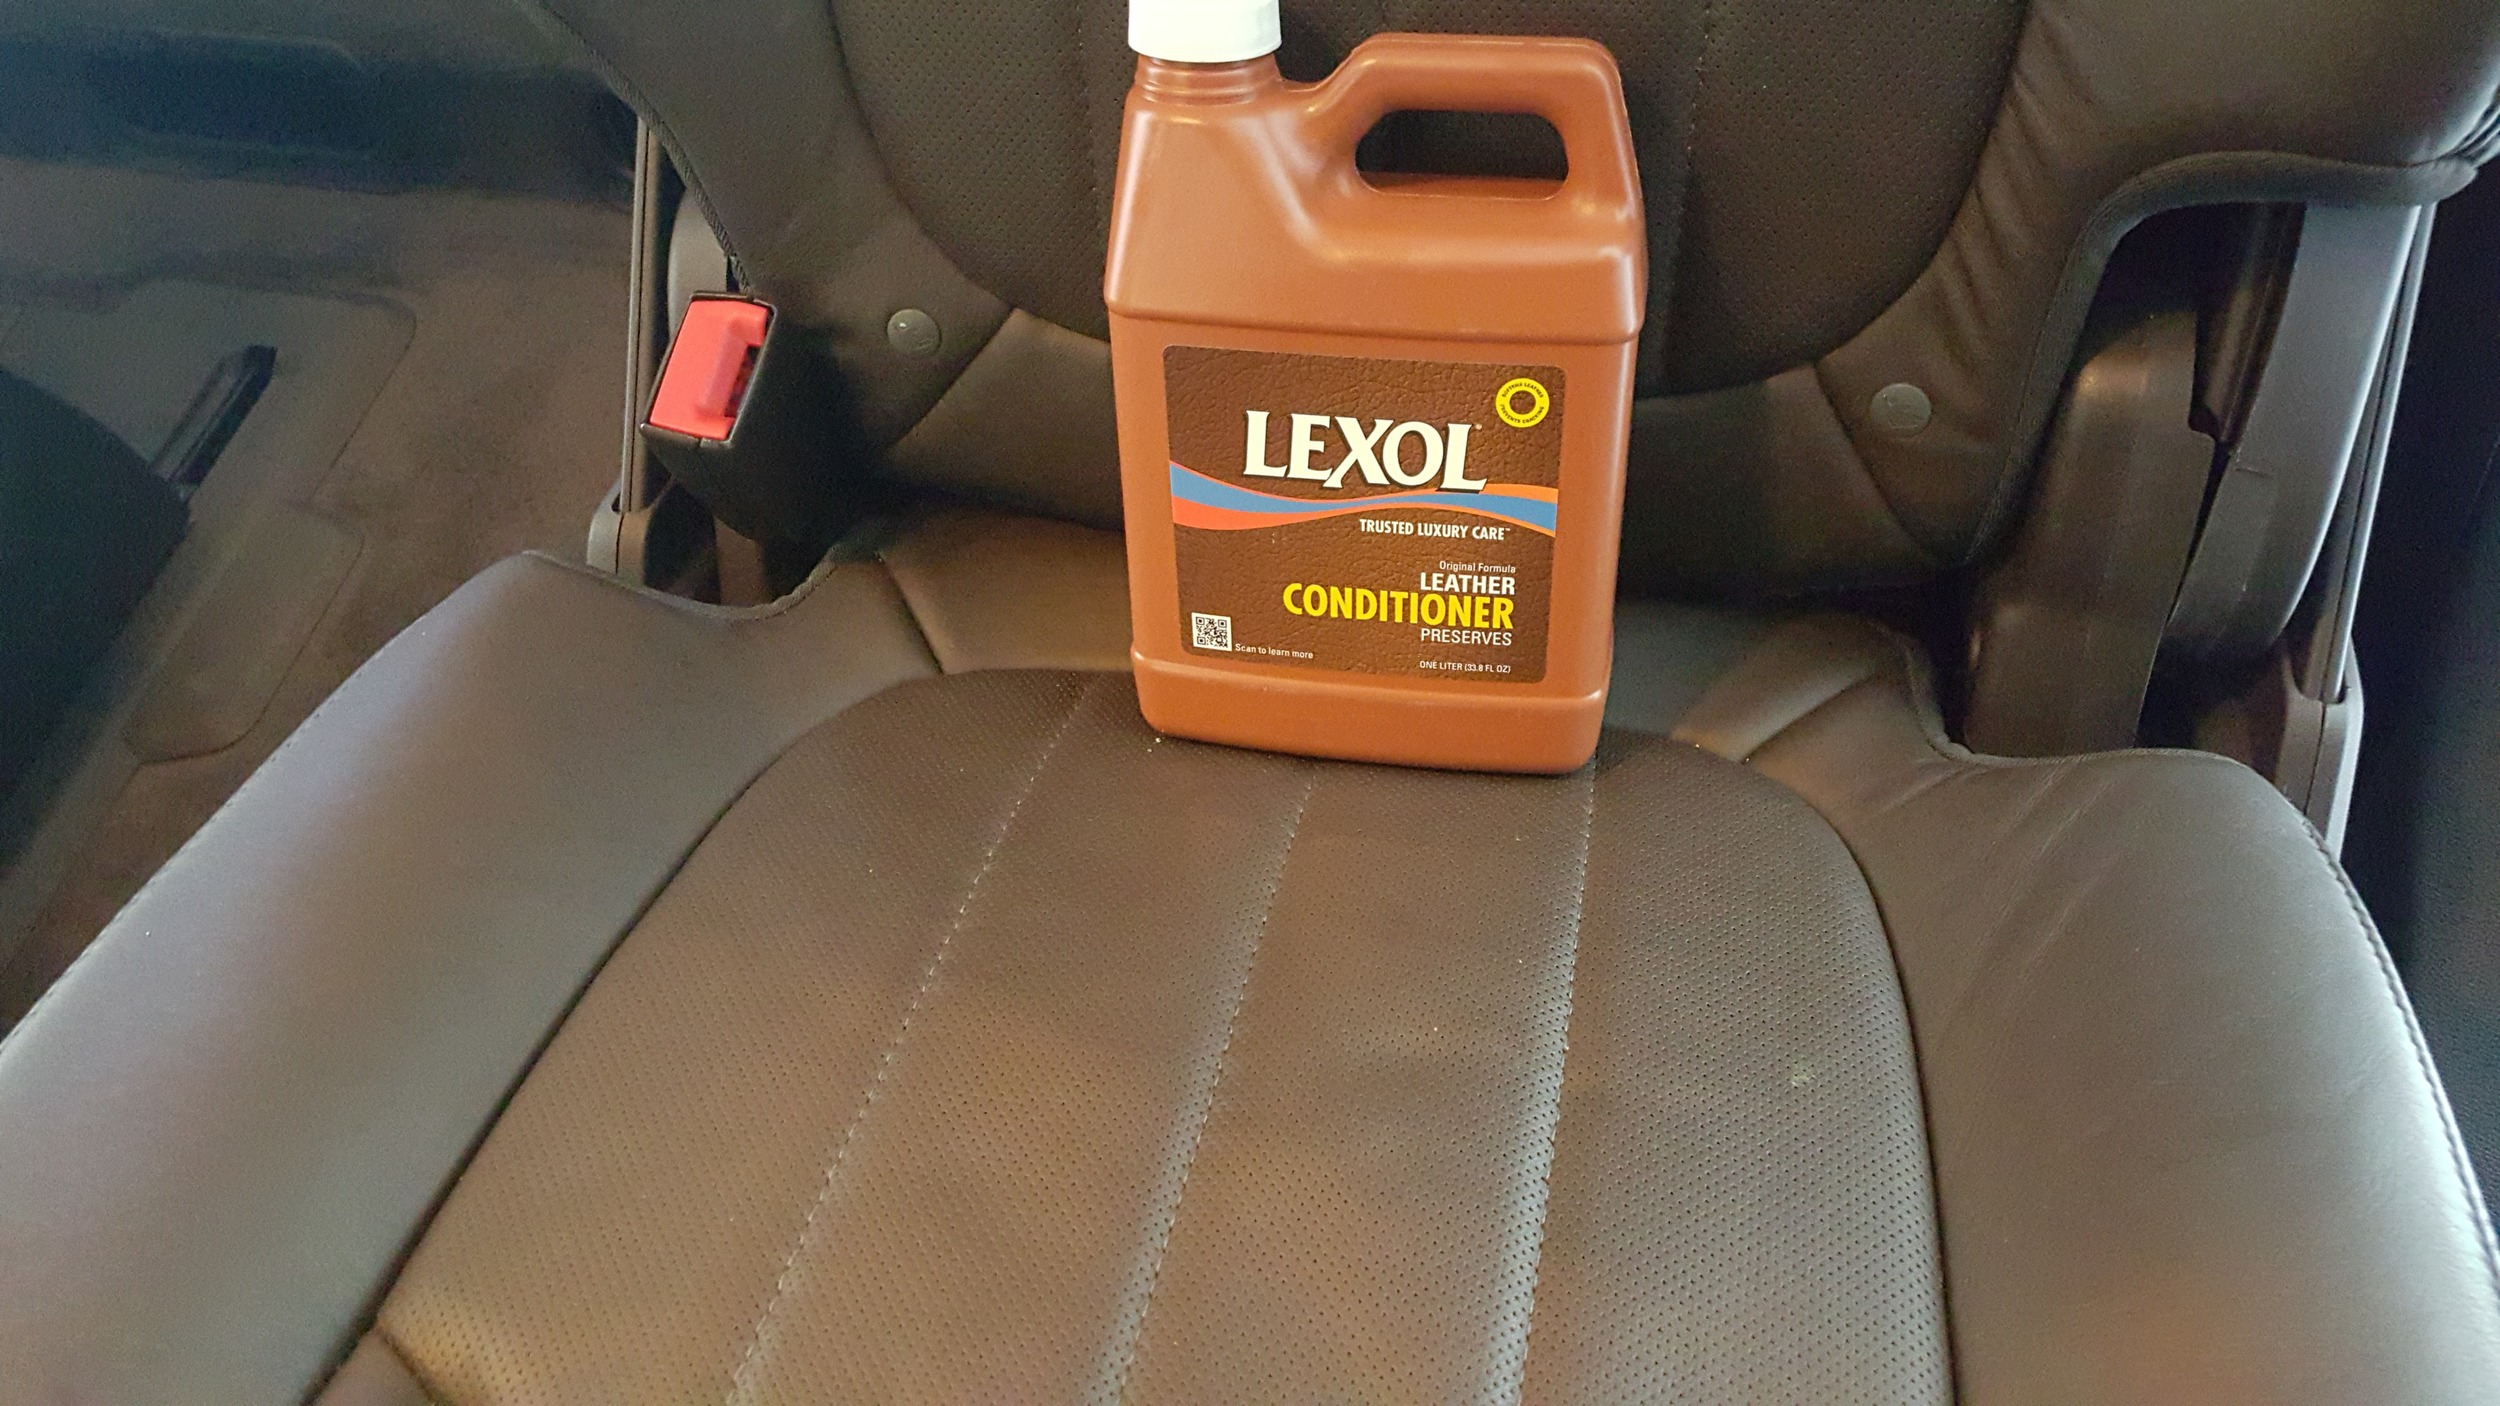 This leather has been cleaned and then conditioned with Lexol Leather cleaner to give it a keep it supple, thanks to proper leather cleaning and conditioning this interior will retain its value.